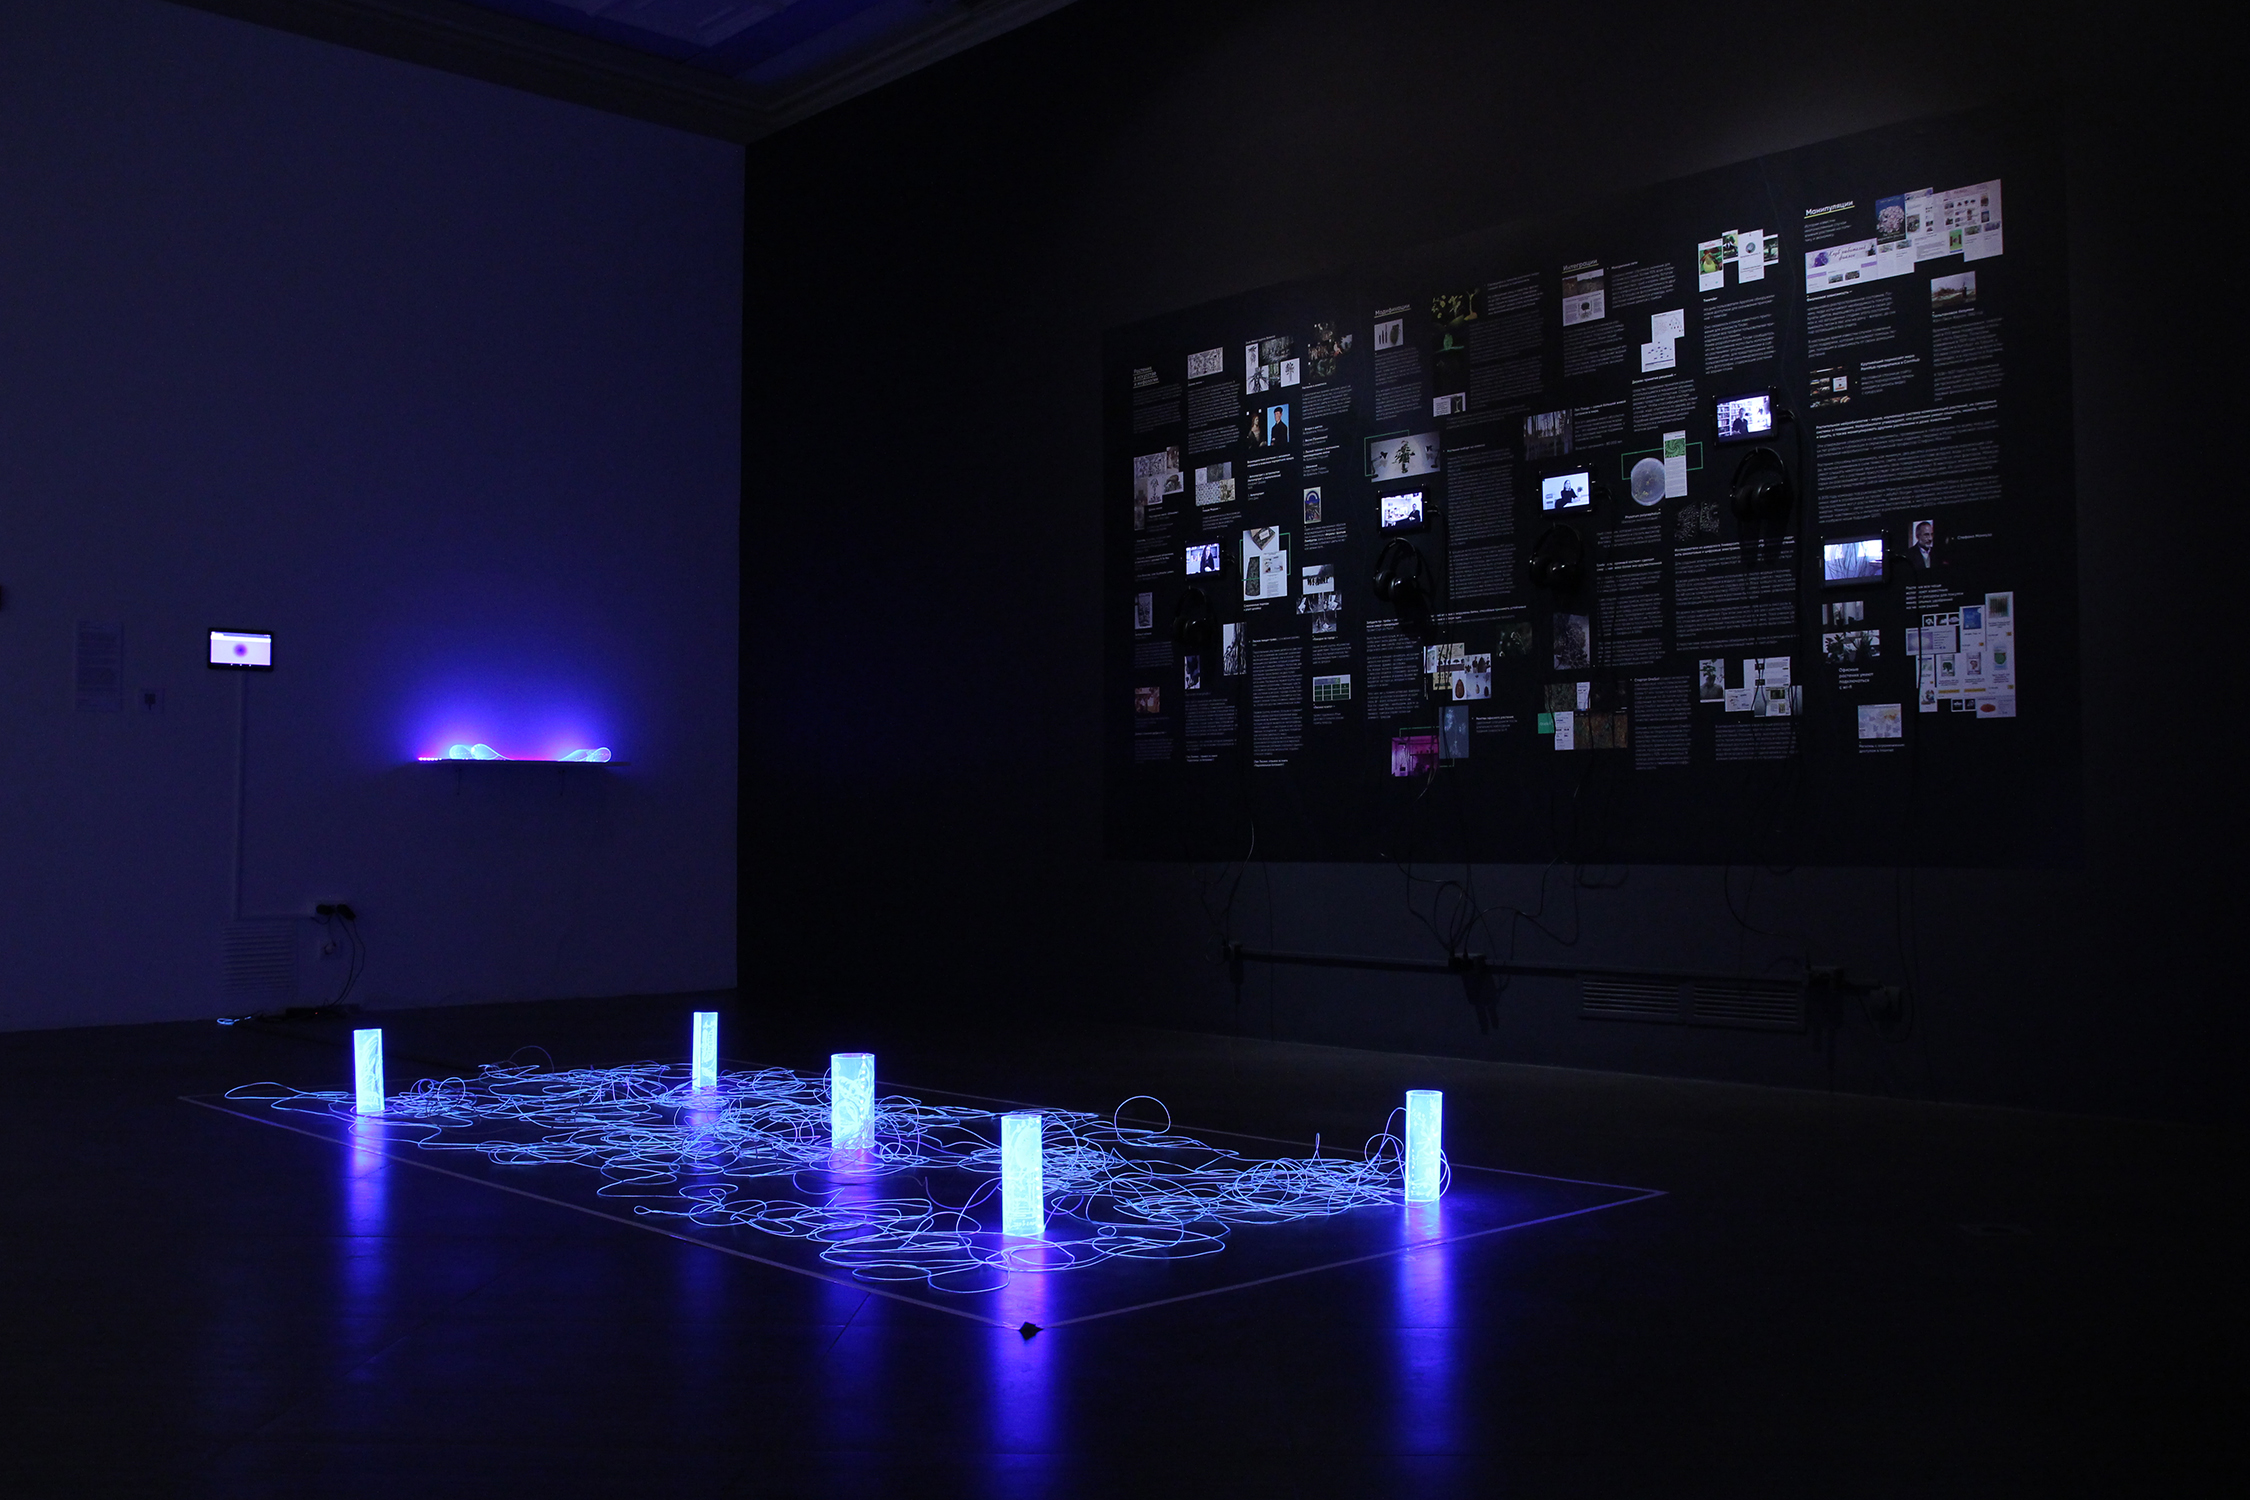 flora.onion 2.0, Ekaterina Art Foundation, 2019. This large project imagines a darknet for plants—an idea that, in the world where agriculture uses IT and special software, isn't as sci-fi as it seems